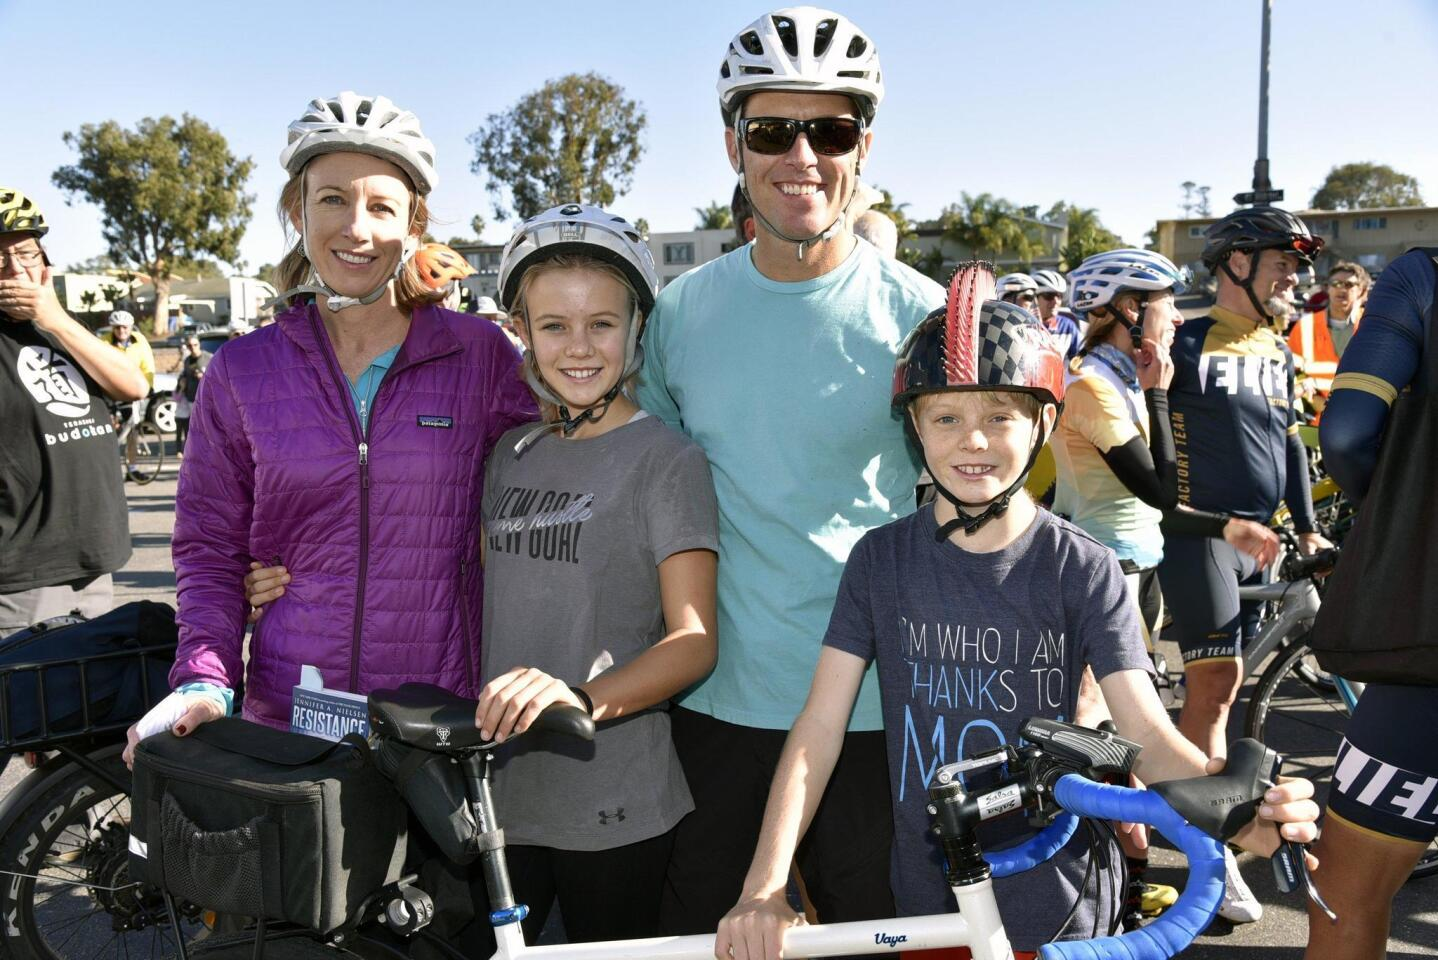 Hundreds take part in 'Ride for Roberta' event in Encinitas to honor injured cyclist